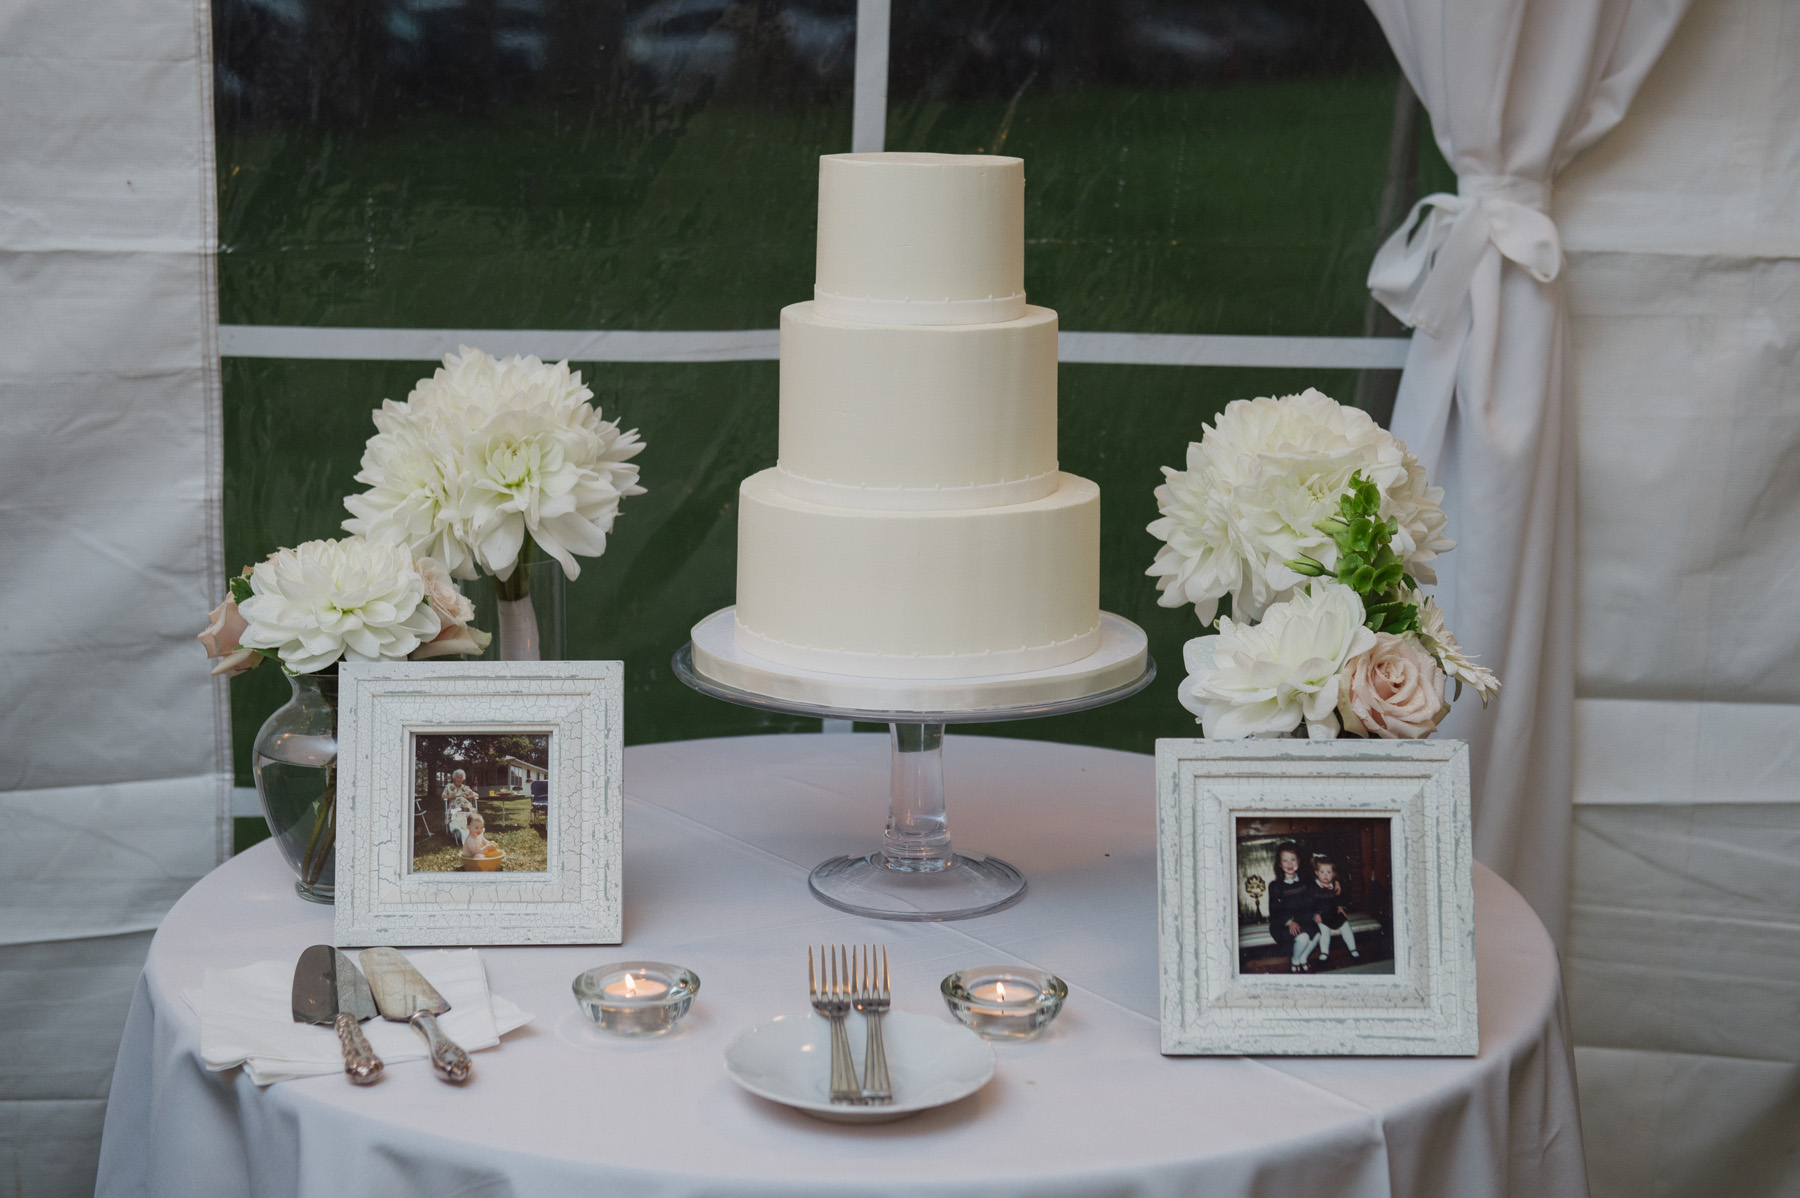 Simple buttercream wedding cake at a backyard tented Ontario wedding. See more at Rebecca Chan Weddings and Events http://www.rebeccachan.ca